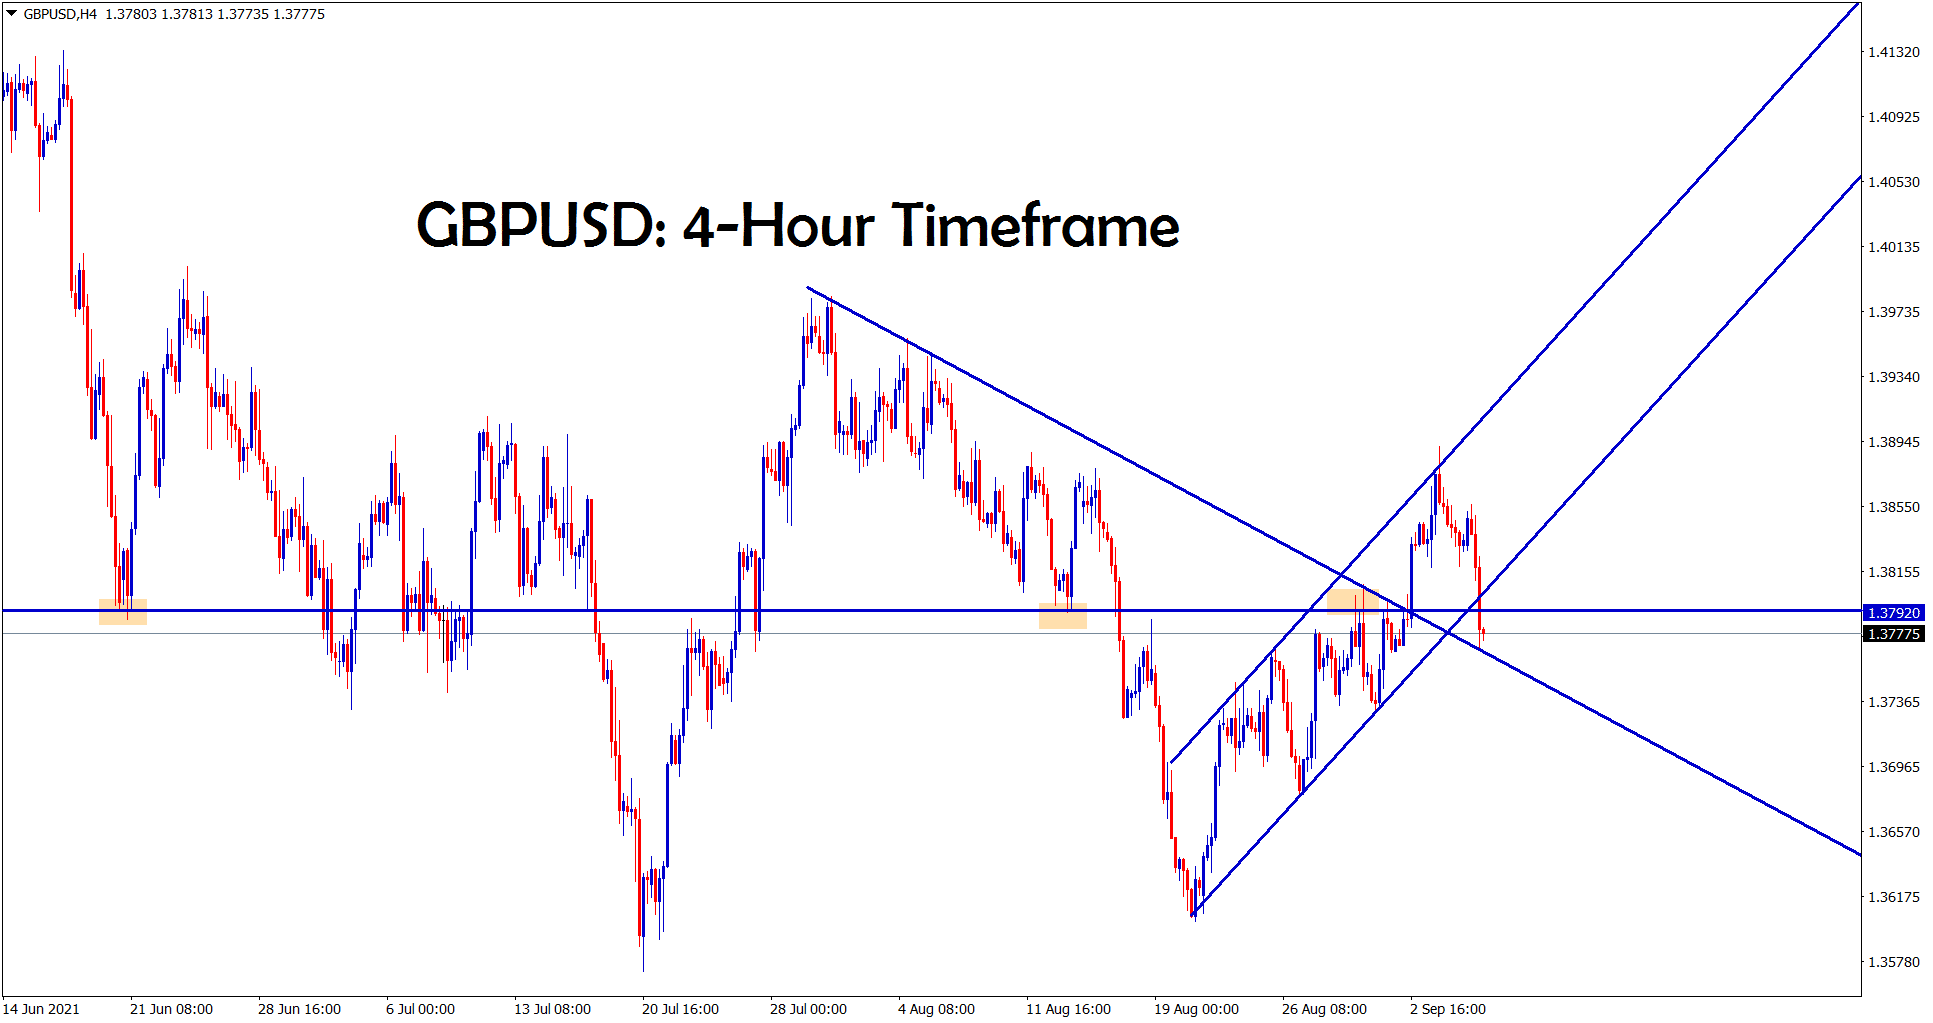 GBPUSD hits the retest zone of the previous broken downtrend line and also reaches the horizontal support area